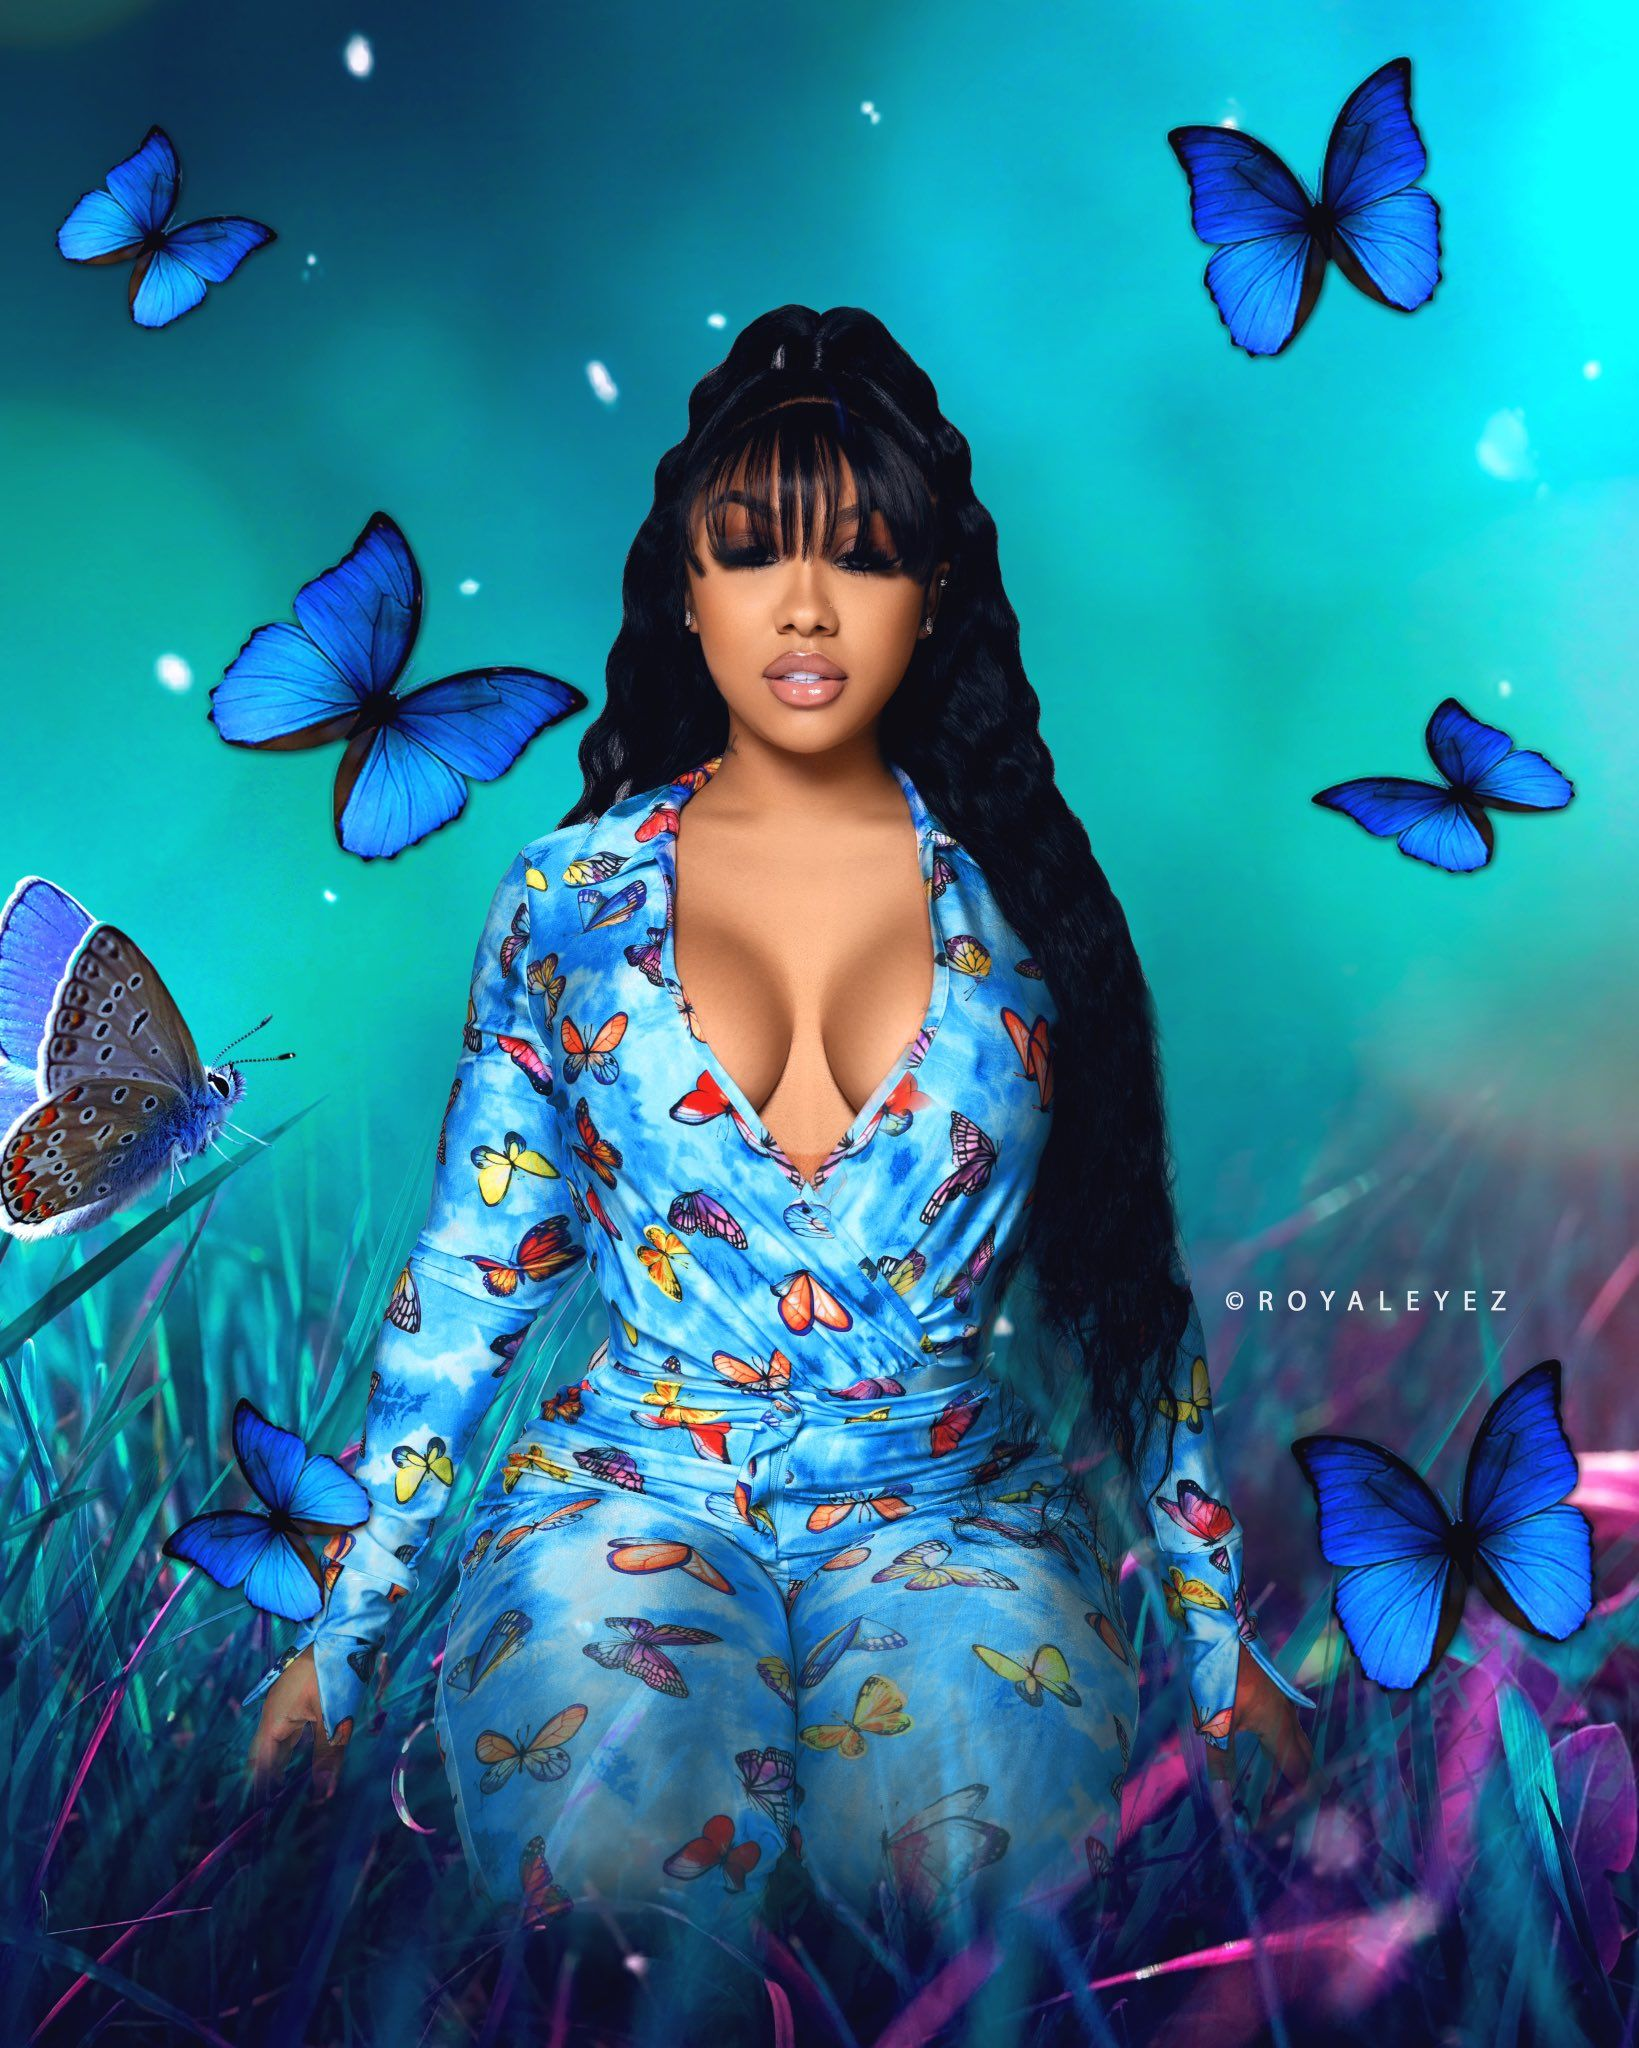 Kylesister On Twitter In 2021 Glam Photoshoot Photoshoot Themes Photoshoot Outfits